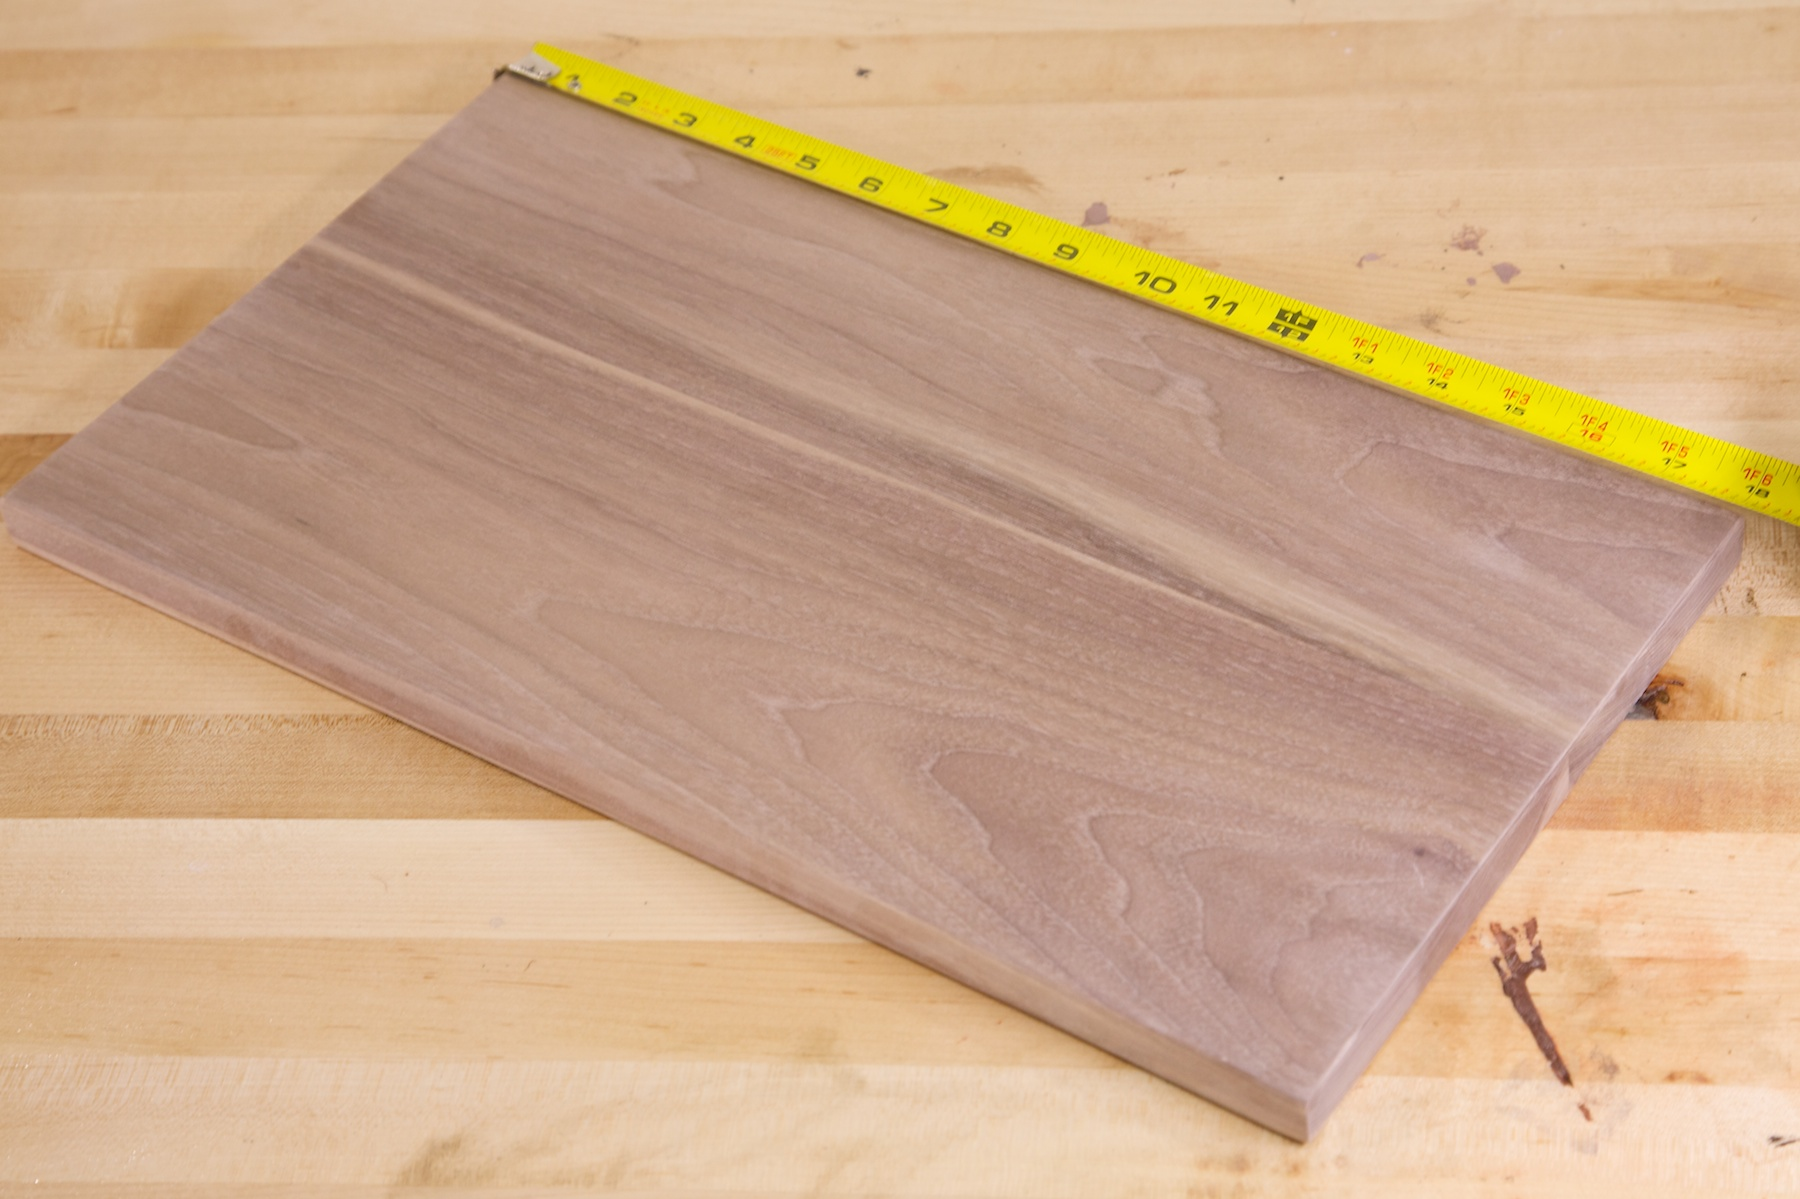 Before Walnut Panel Is Sanded To 220 Grit And Ready For The Next Step